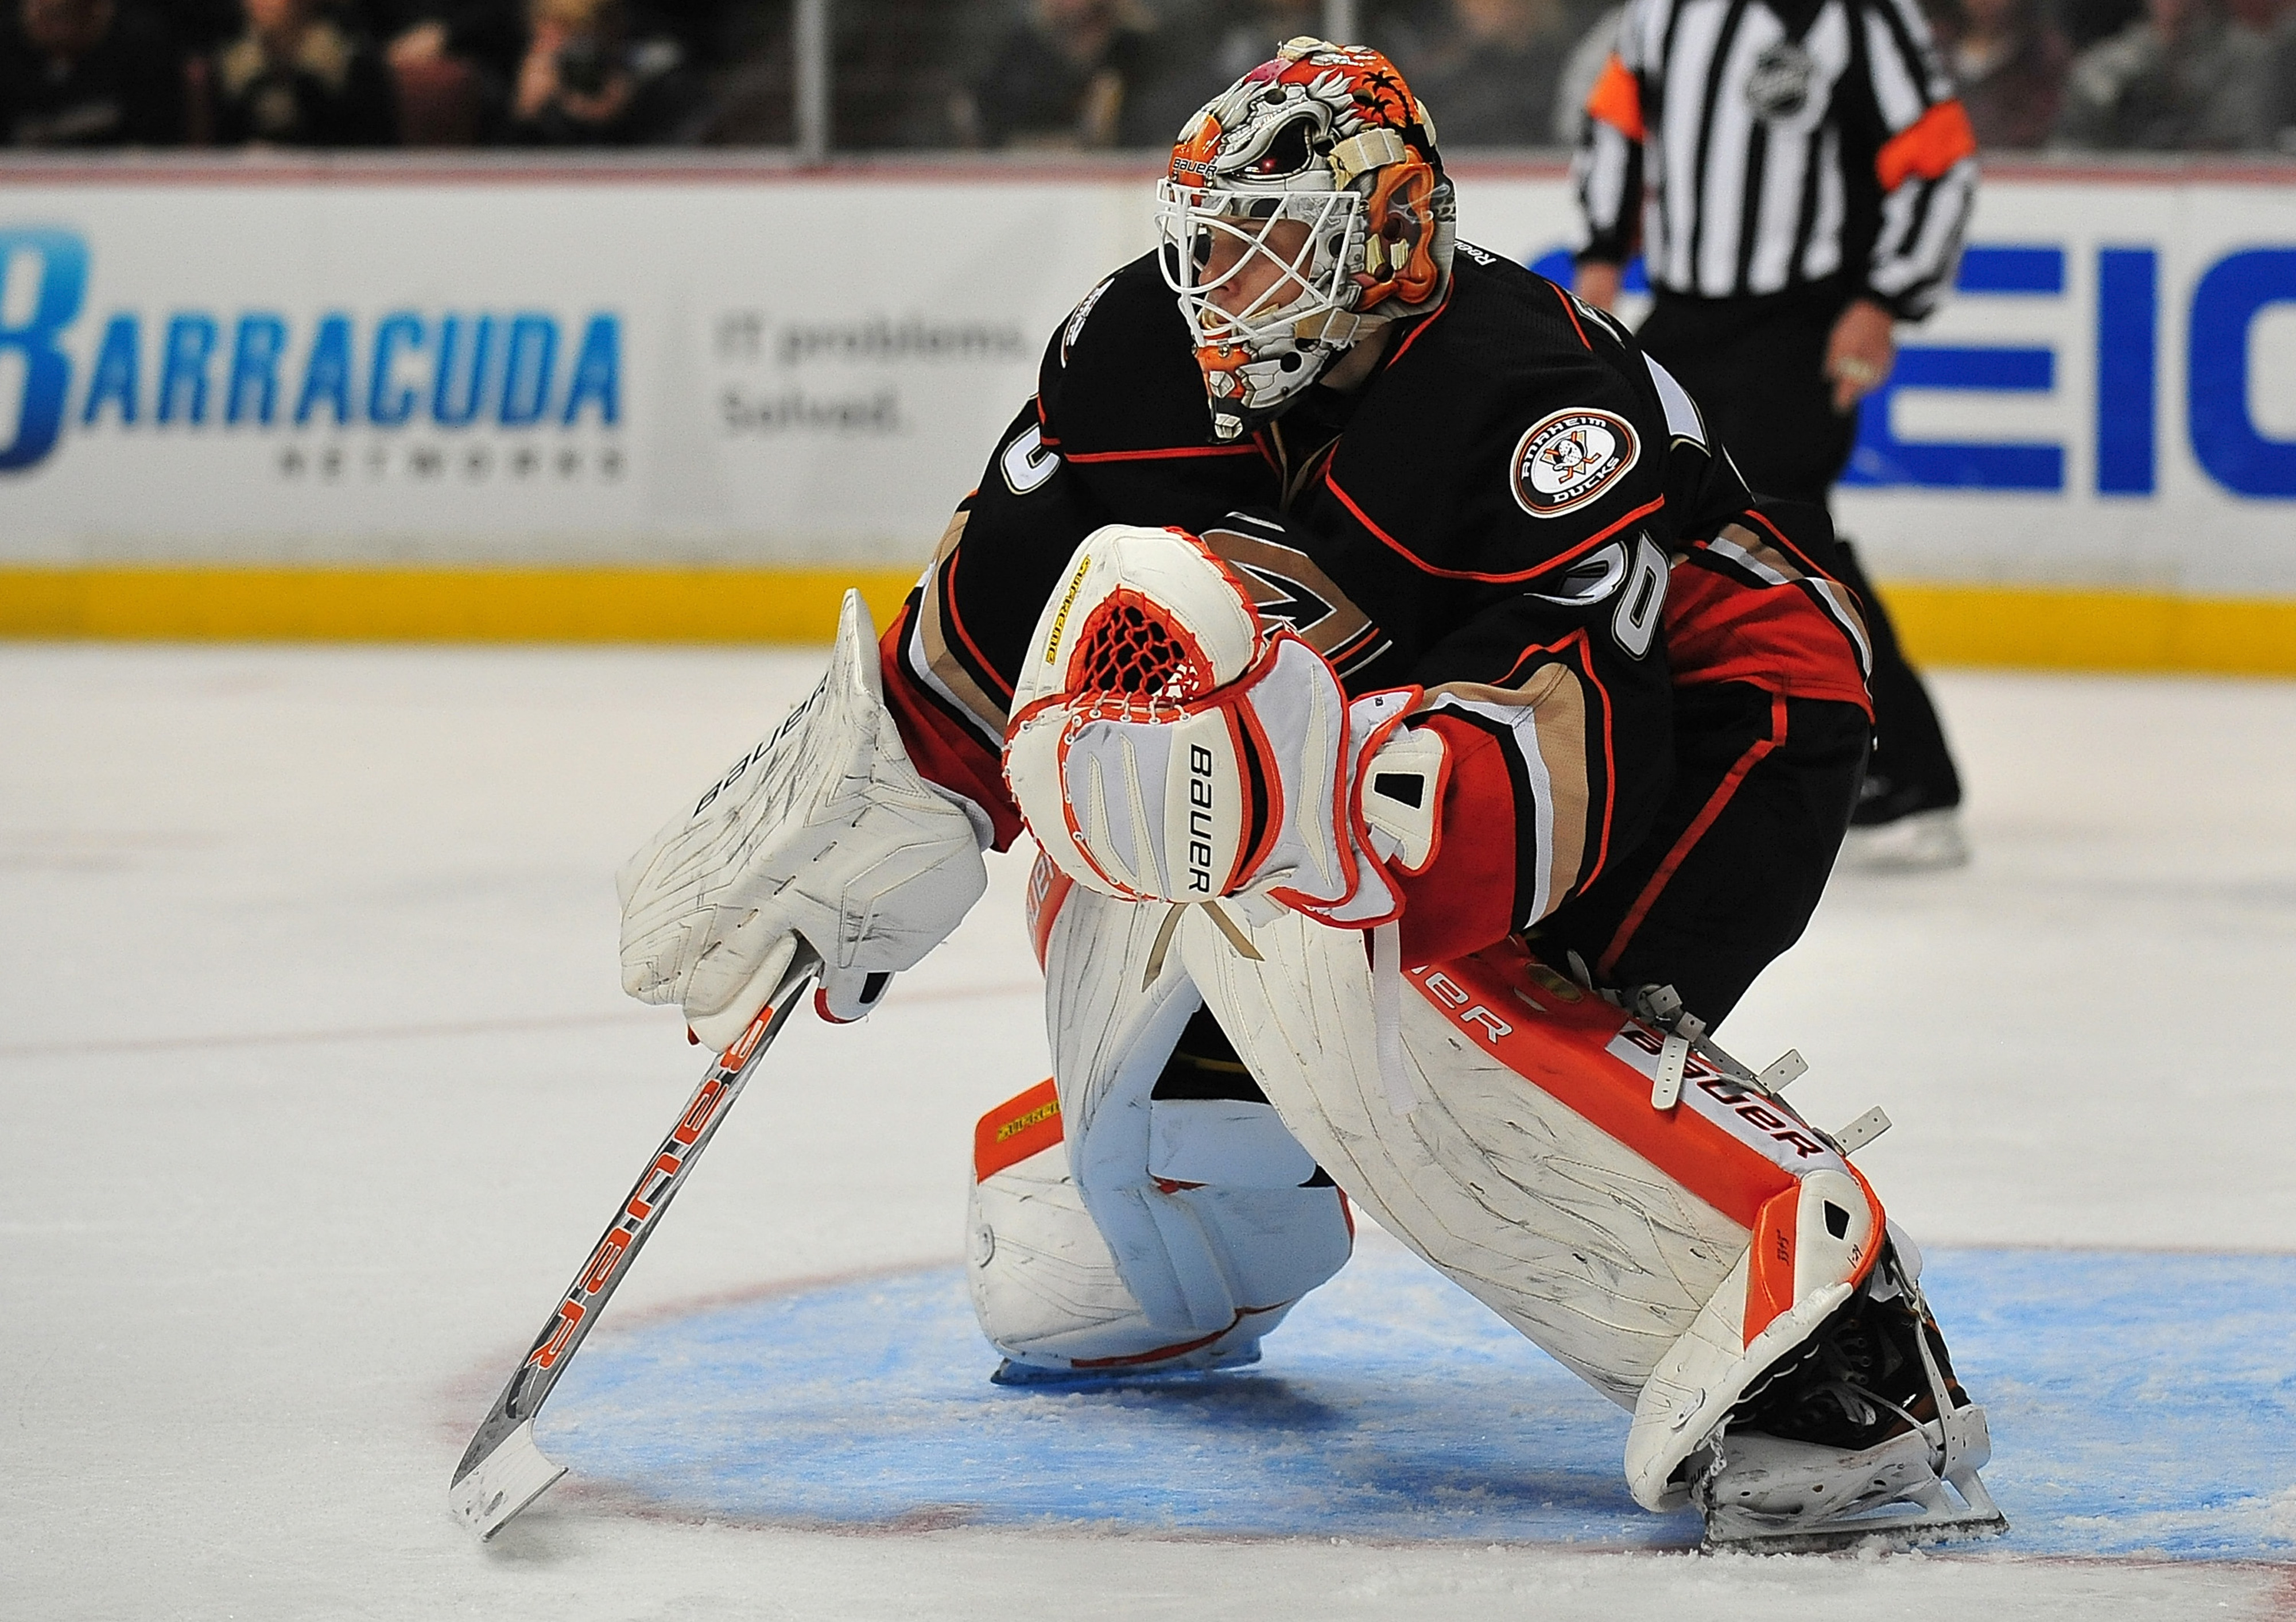 Silly Kings. You thought we were going to let you be the only team around with a speedy goalie name.